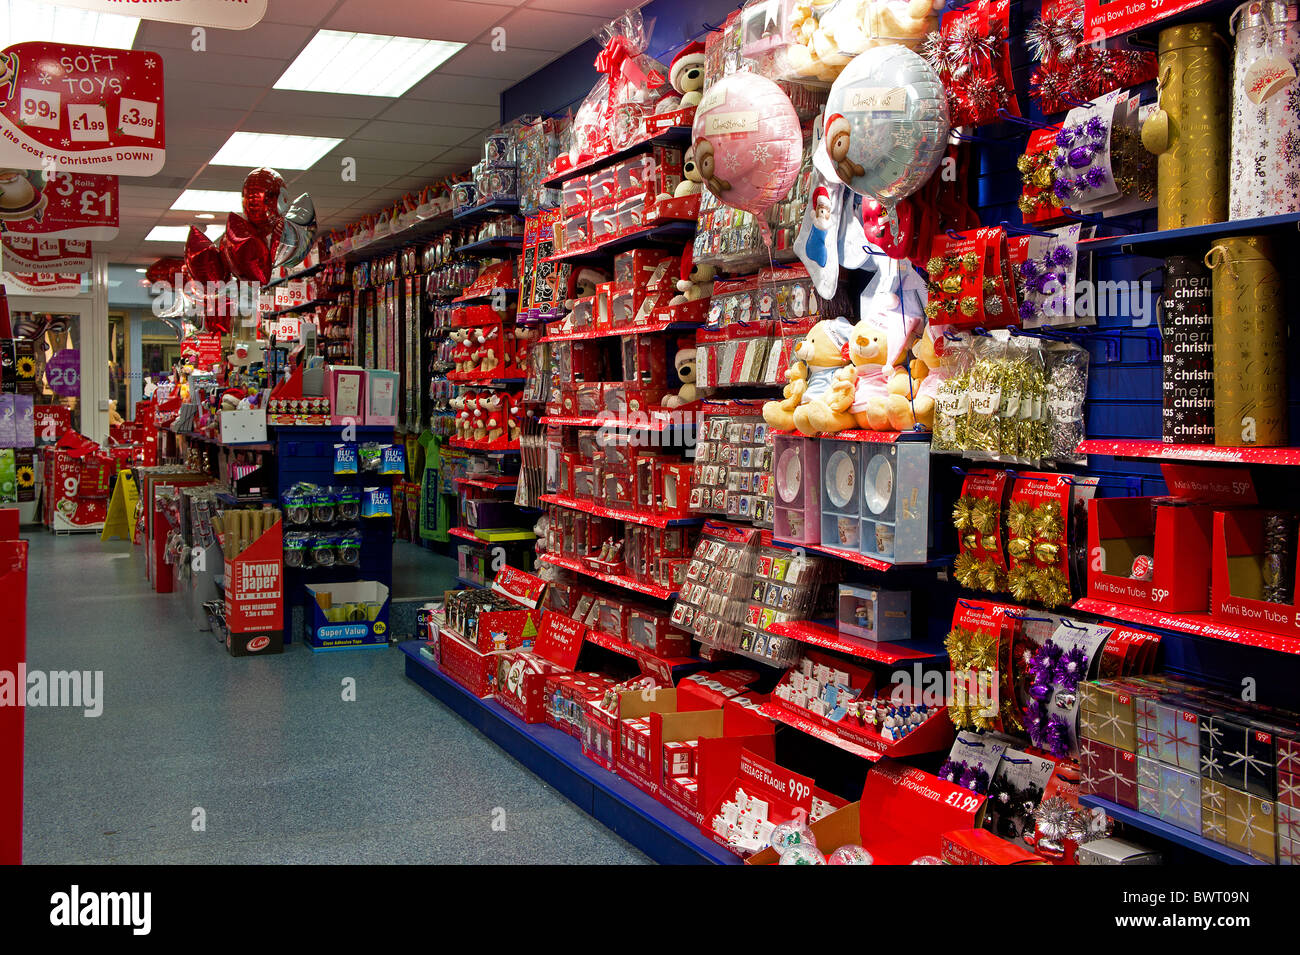 a high street shop selling christmas decorations and gifts - Stock Image